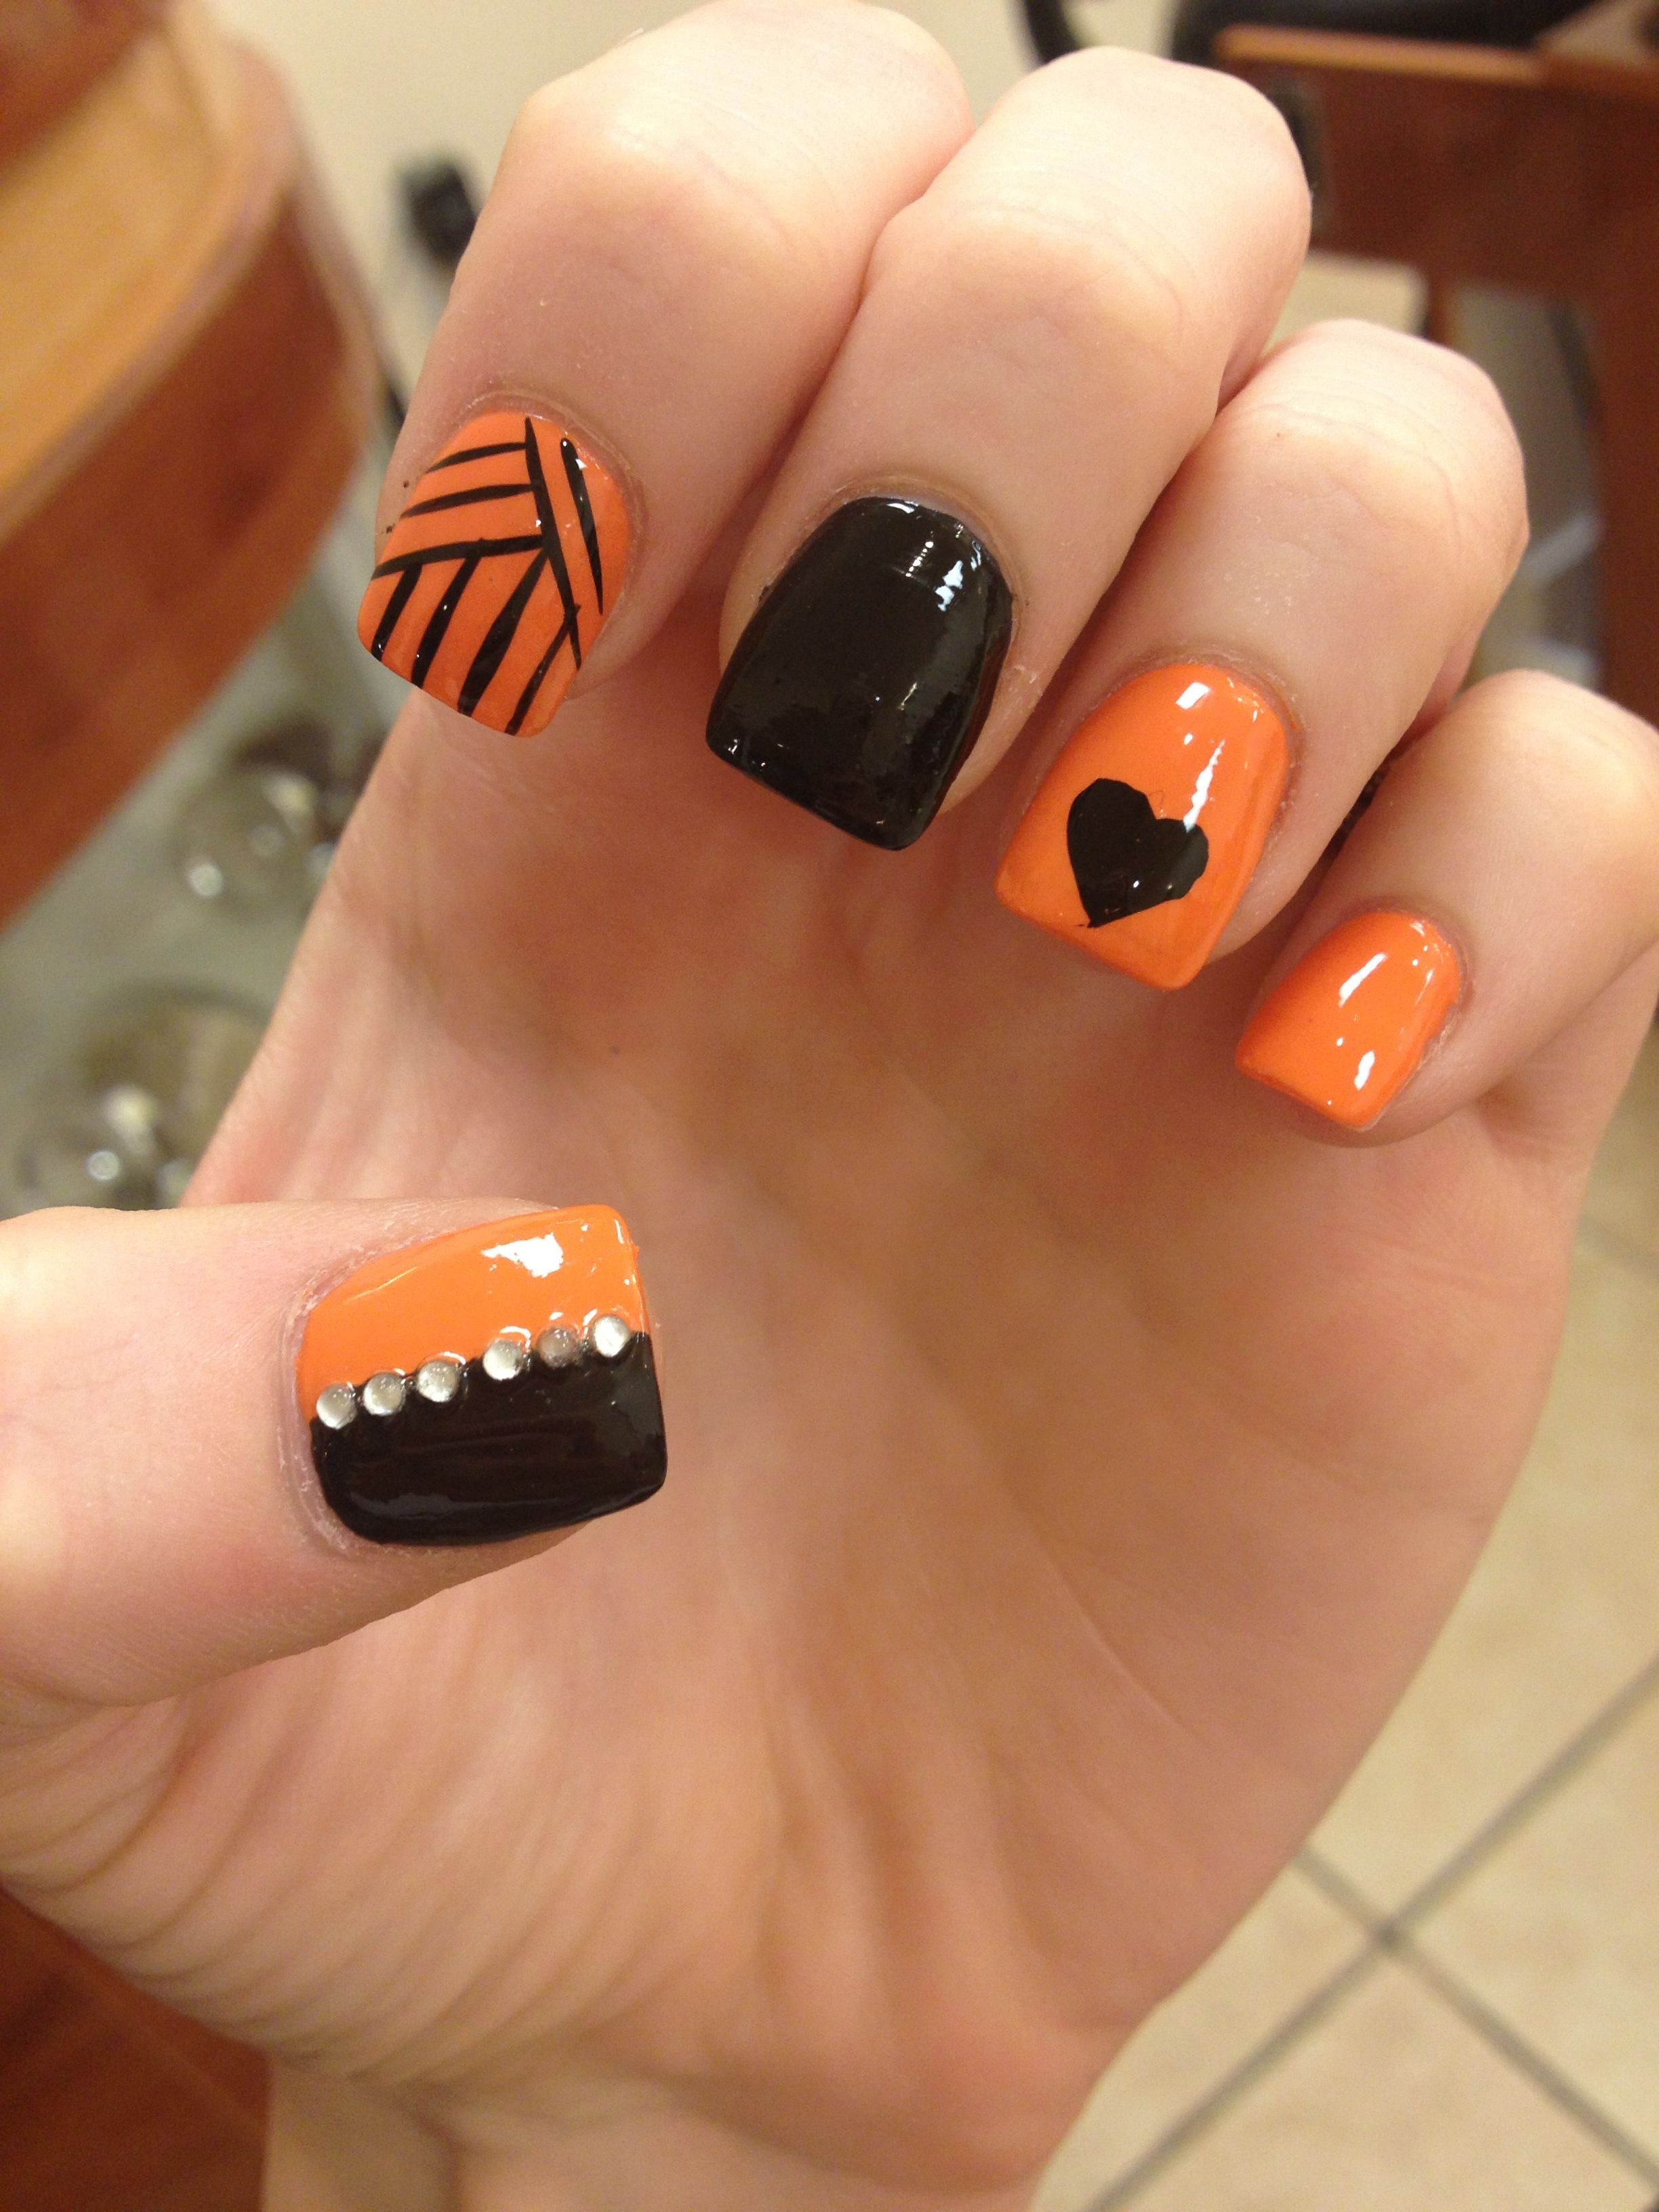 Pin By Cassie On Nails Orange Nail Designs Black Nail Designs Halloween Nail Designs